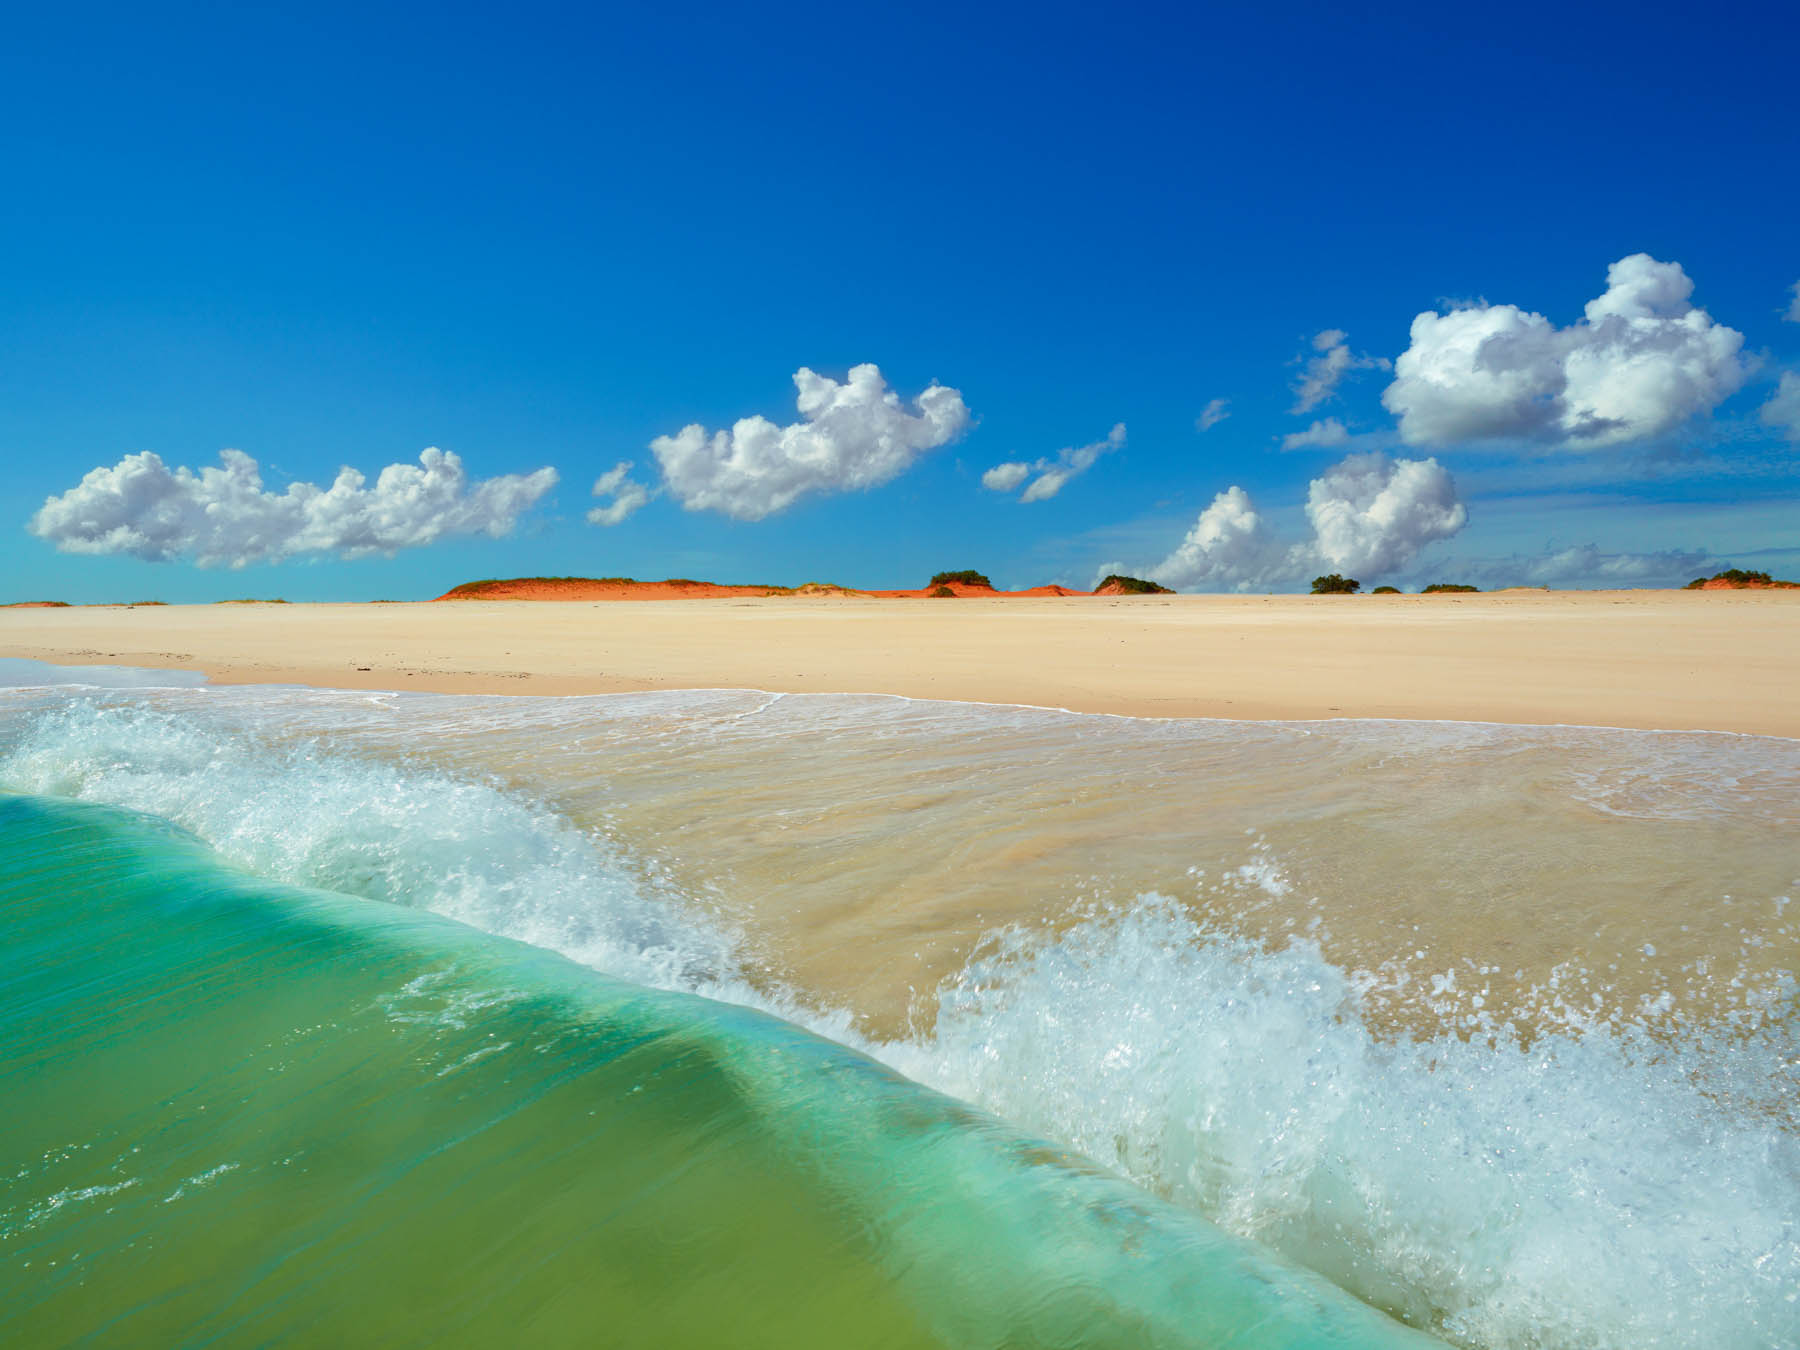 Turquoise waves gently breaking on the pure white sand of Cape Leveque, Kimberleys, WA, Australia.